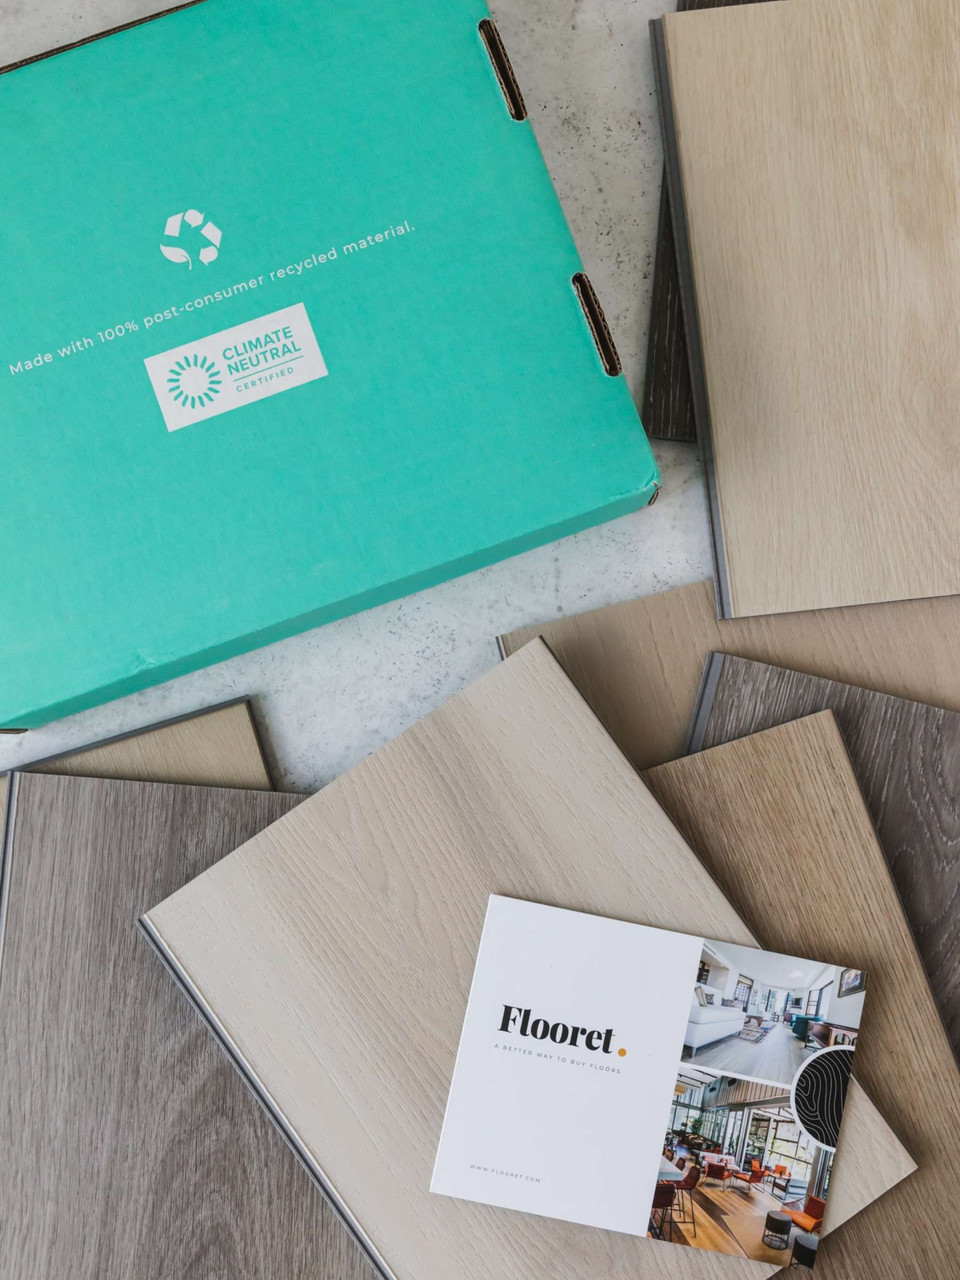 Press Release: Flooret Becomes Climate Neutral Certified For the 2nd Year in a Row